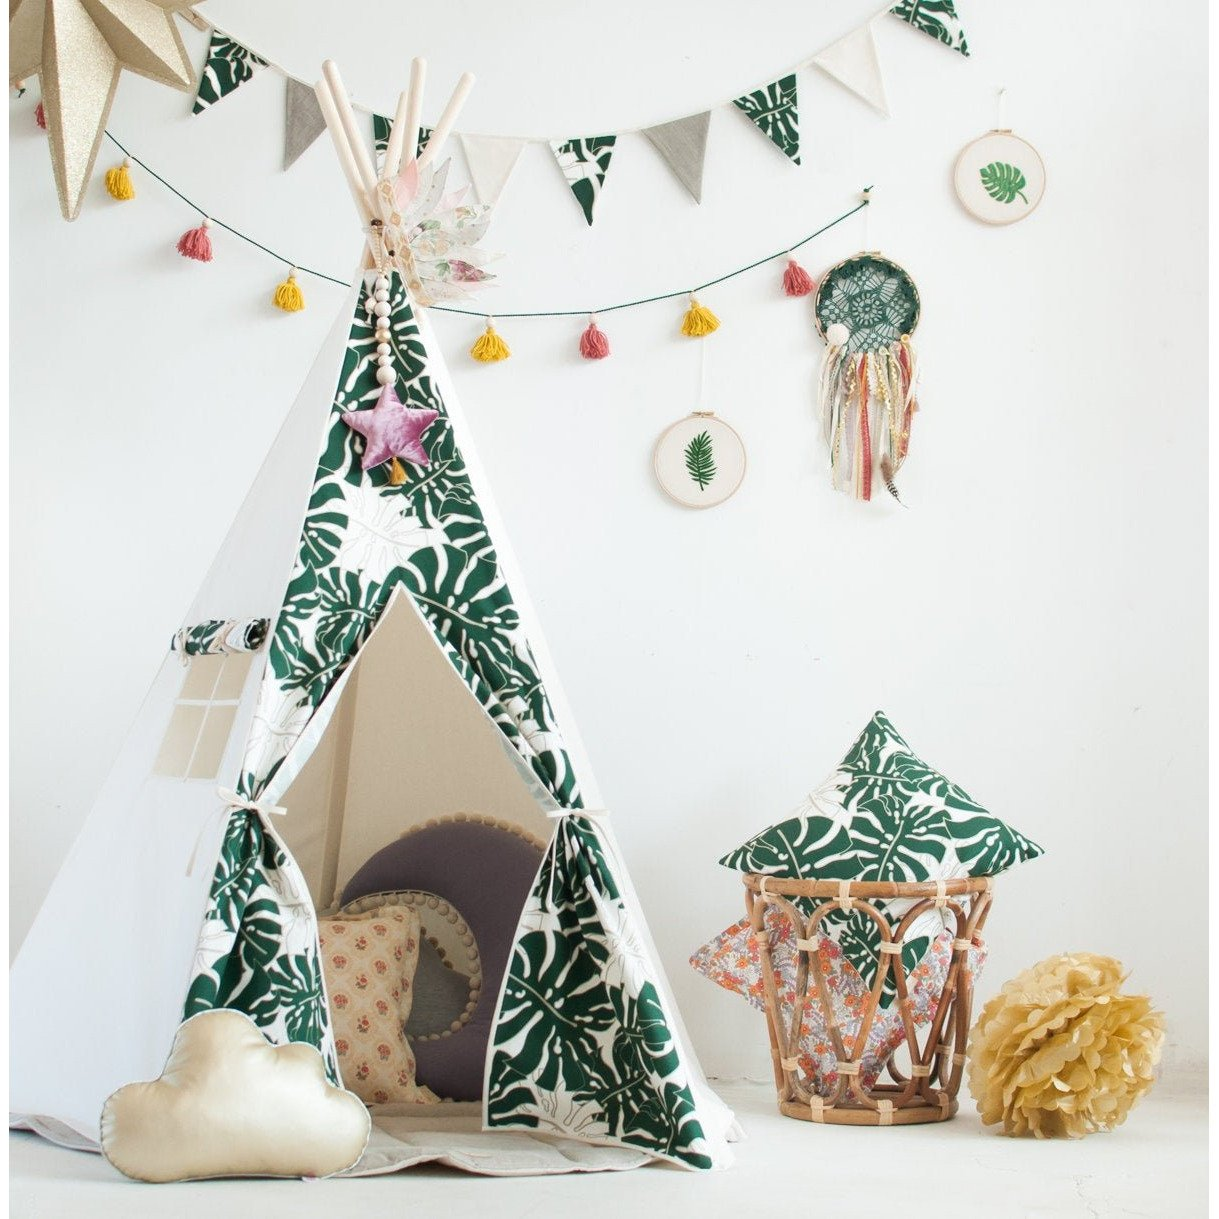 Green Leaves Teepee Tent - The Quirky Home Co